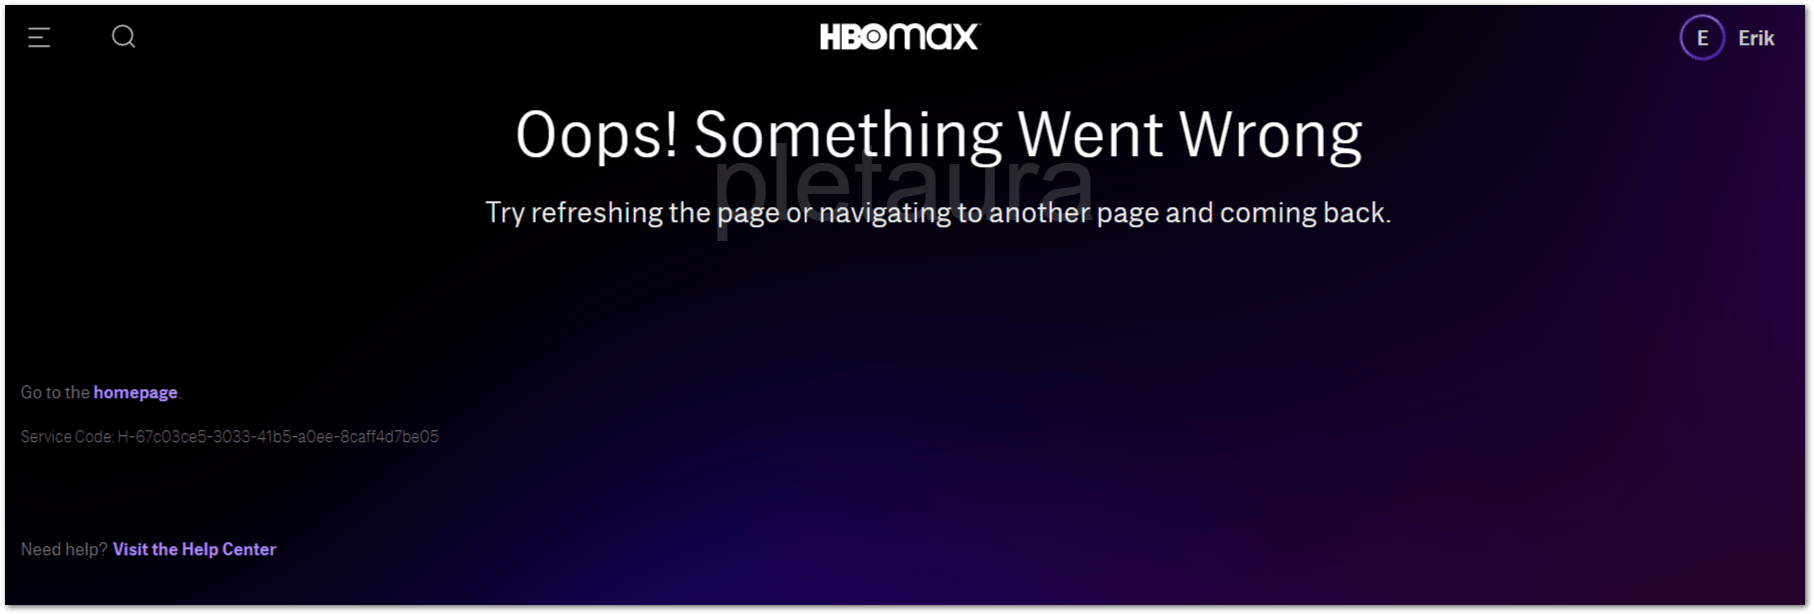 HBO Max oops something went wrong error